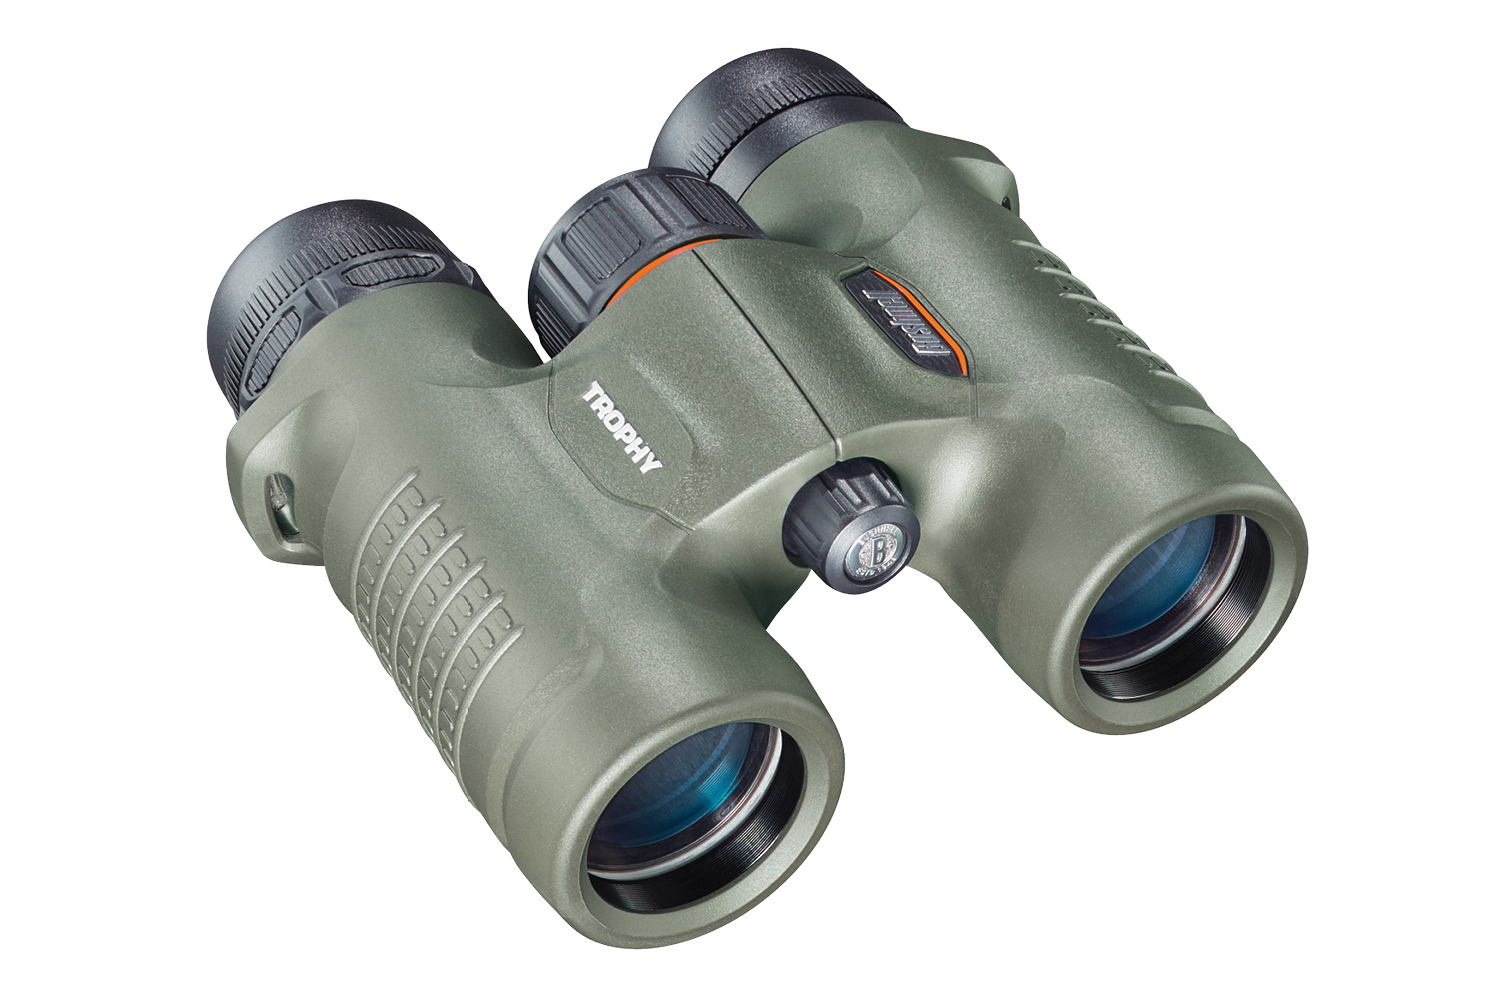 Бинокль Bushnell TROPHY 8x32 цена и фото